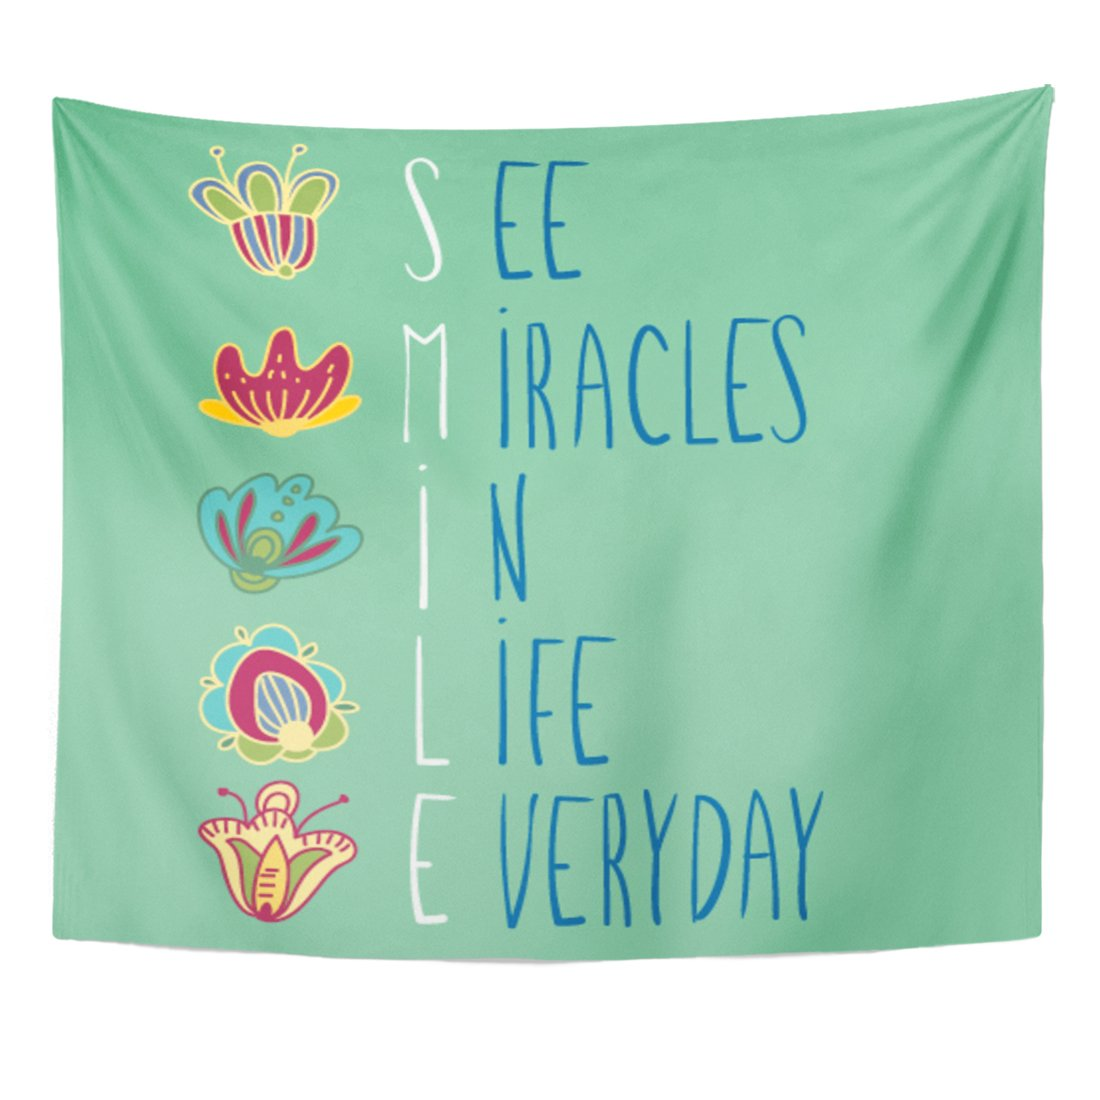 Emvency Tapestry Cute Inspirational Words See Miracles in Life Everyday Colorful Home Decor Wall Hanging for Living Room Bedroom Dorm 50x60 Inches by Emvency